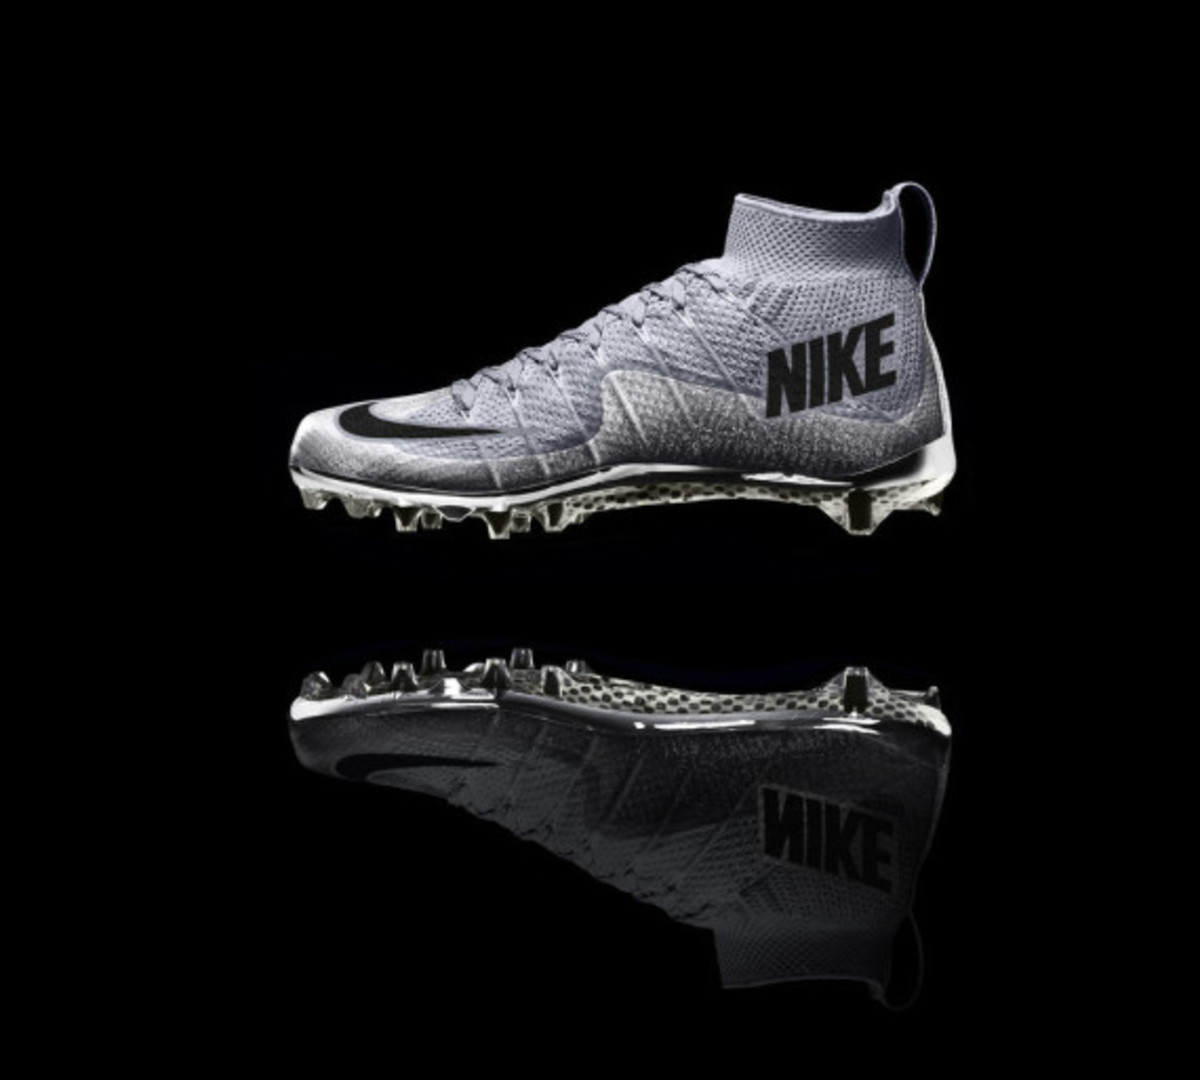 nike-vapor-untouchable-cleat-07